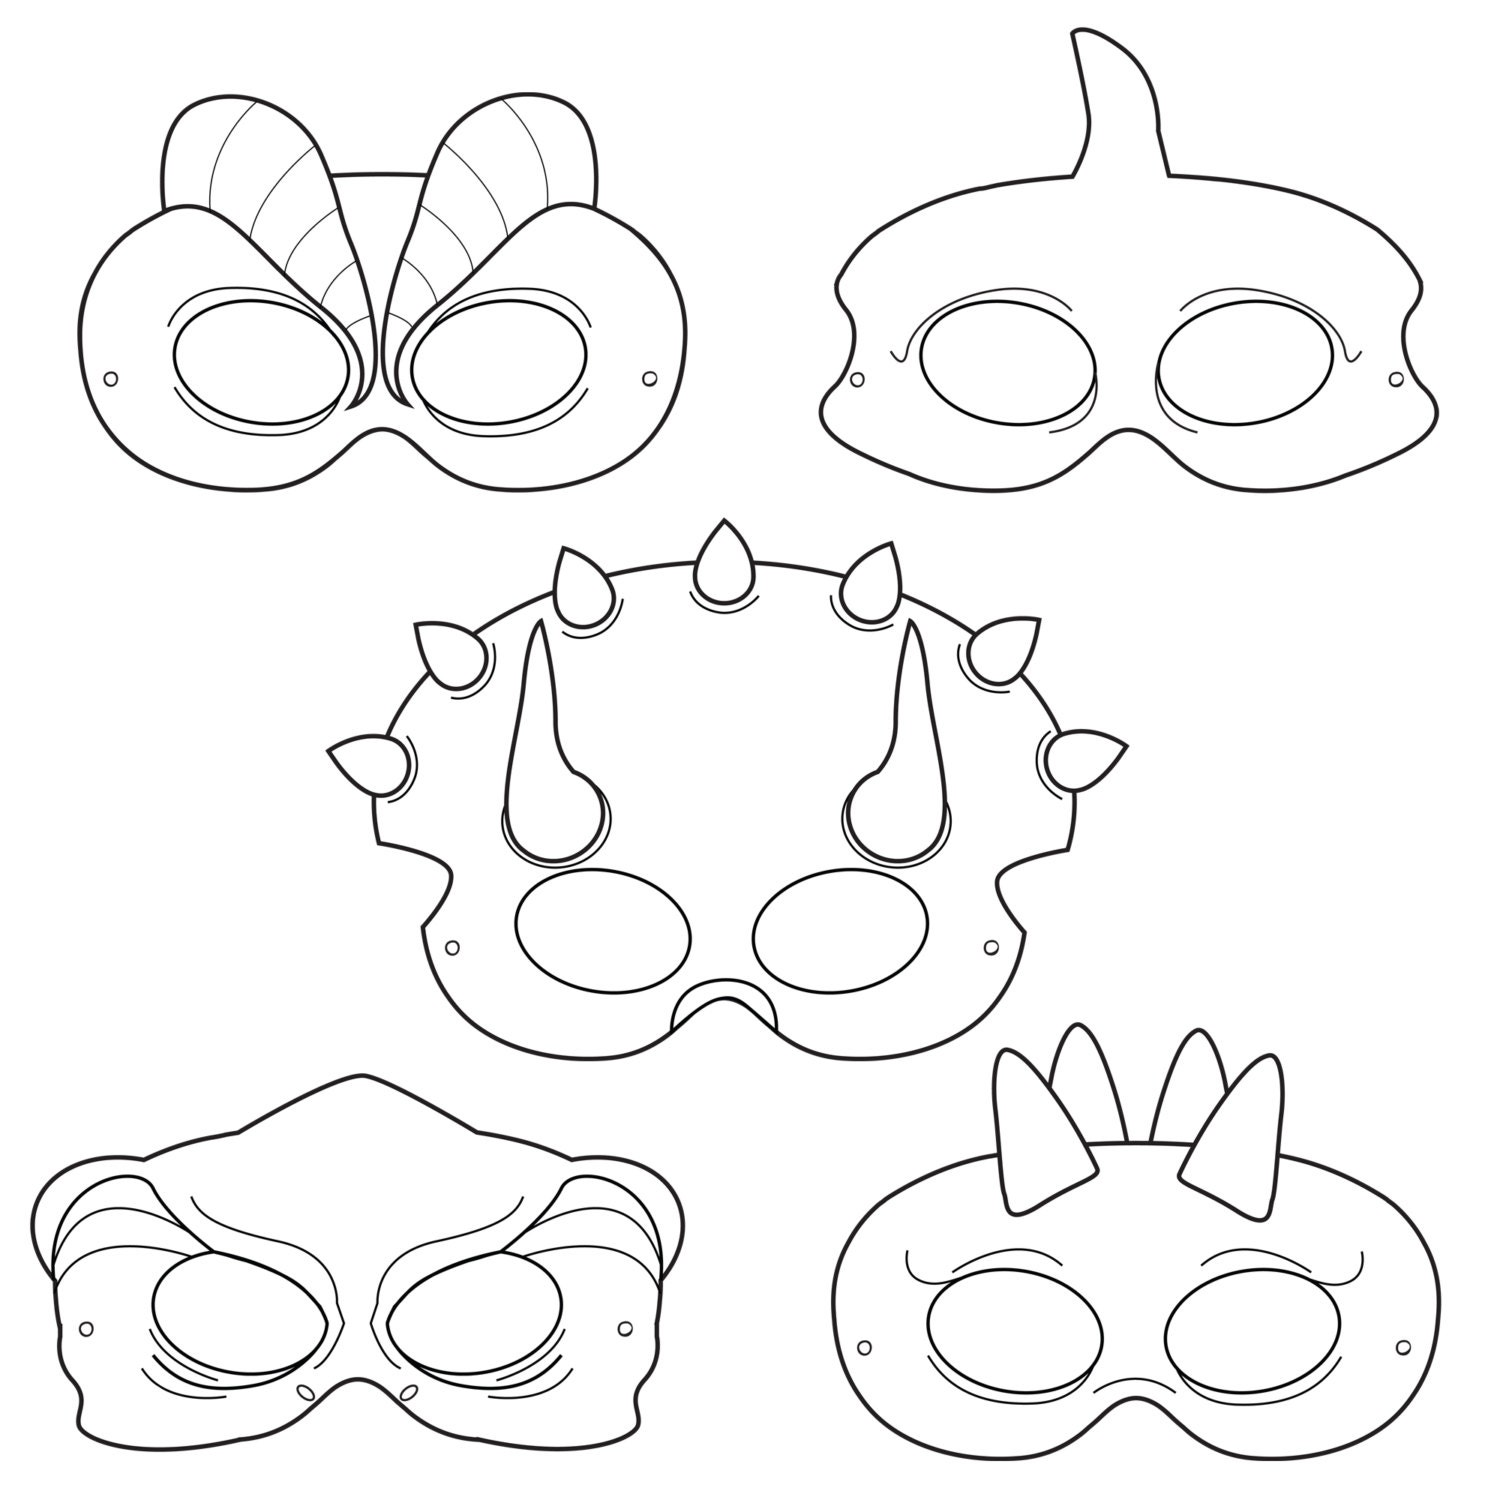 Printable Halloween Masks Free Masks For Kids To Print on scary dinosaur invitations